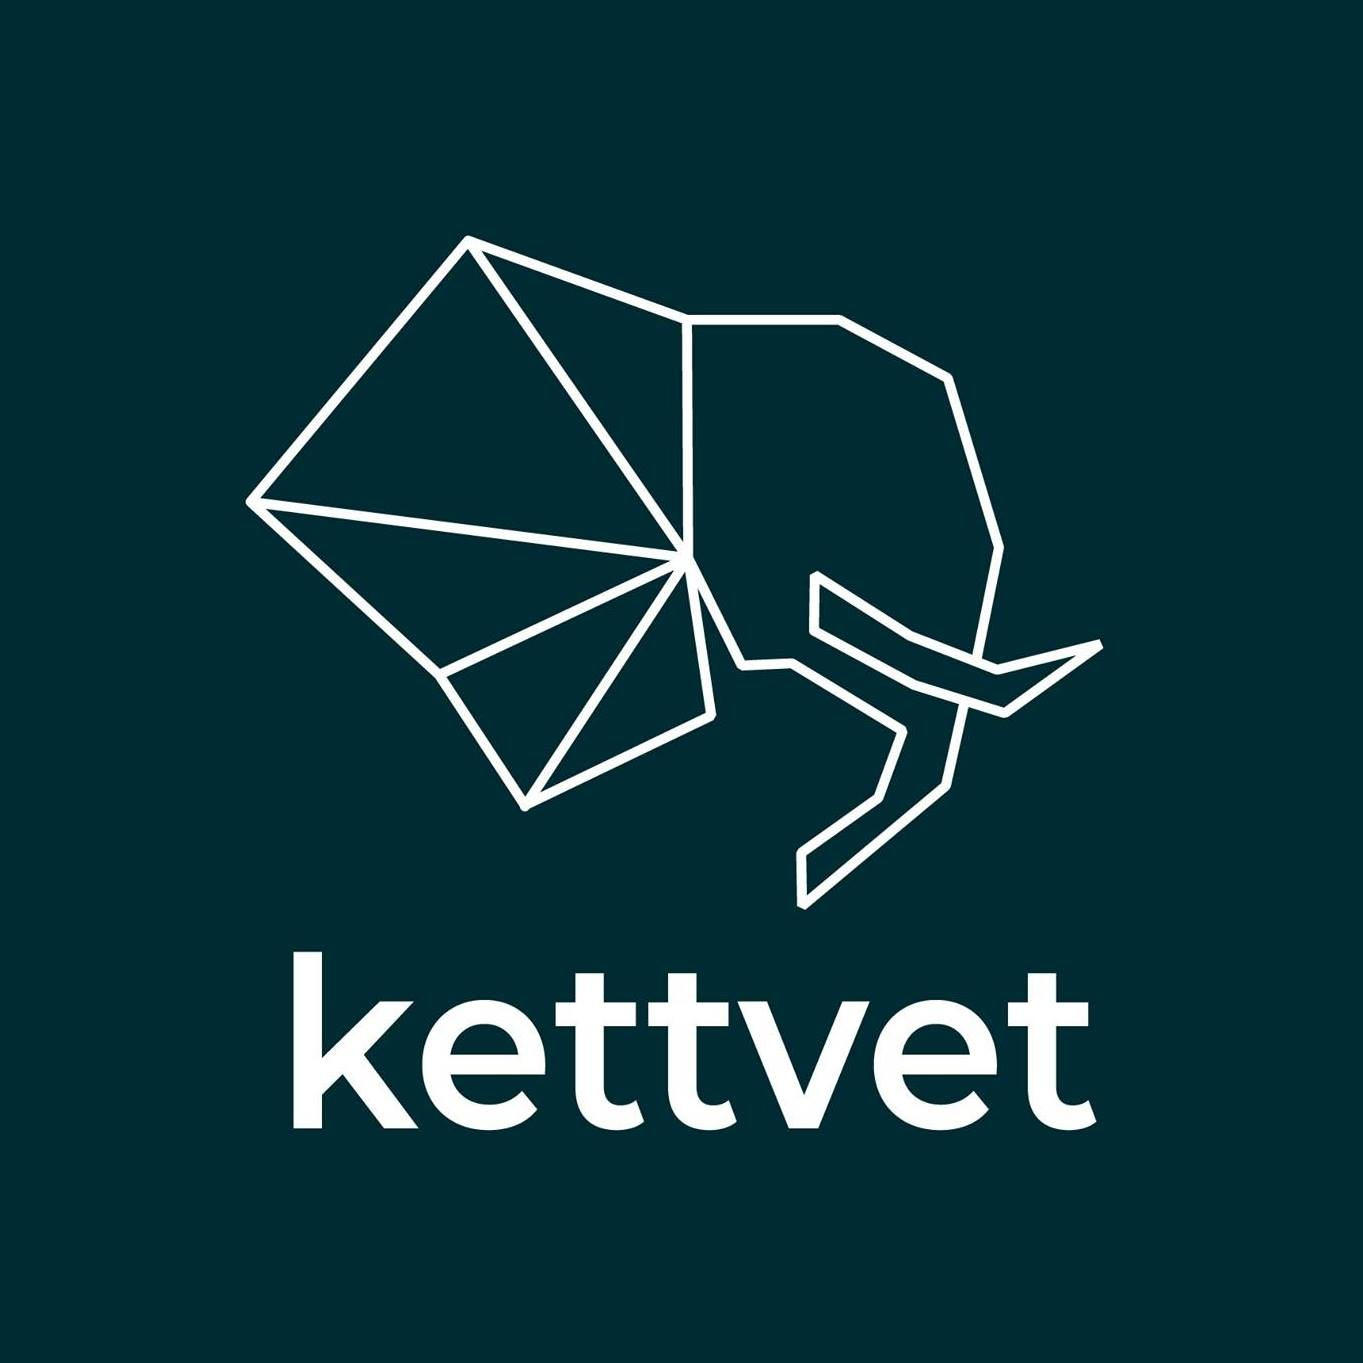 cropped-Logo-kettvet-01-scaled-1